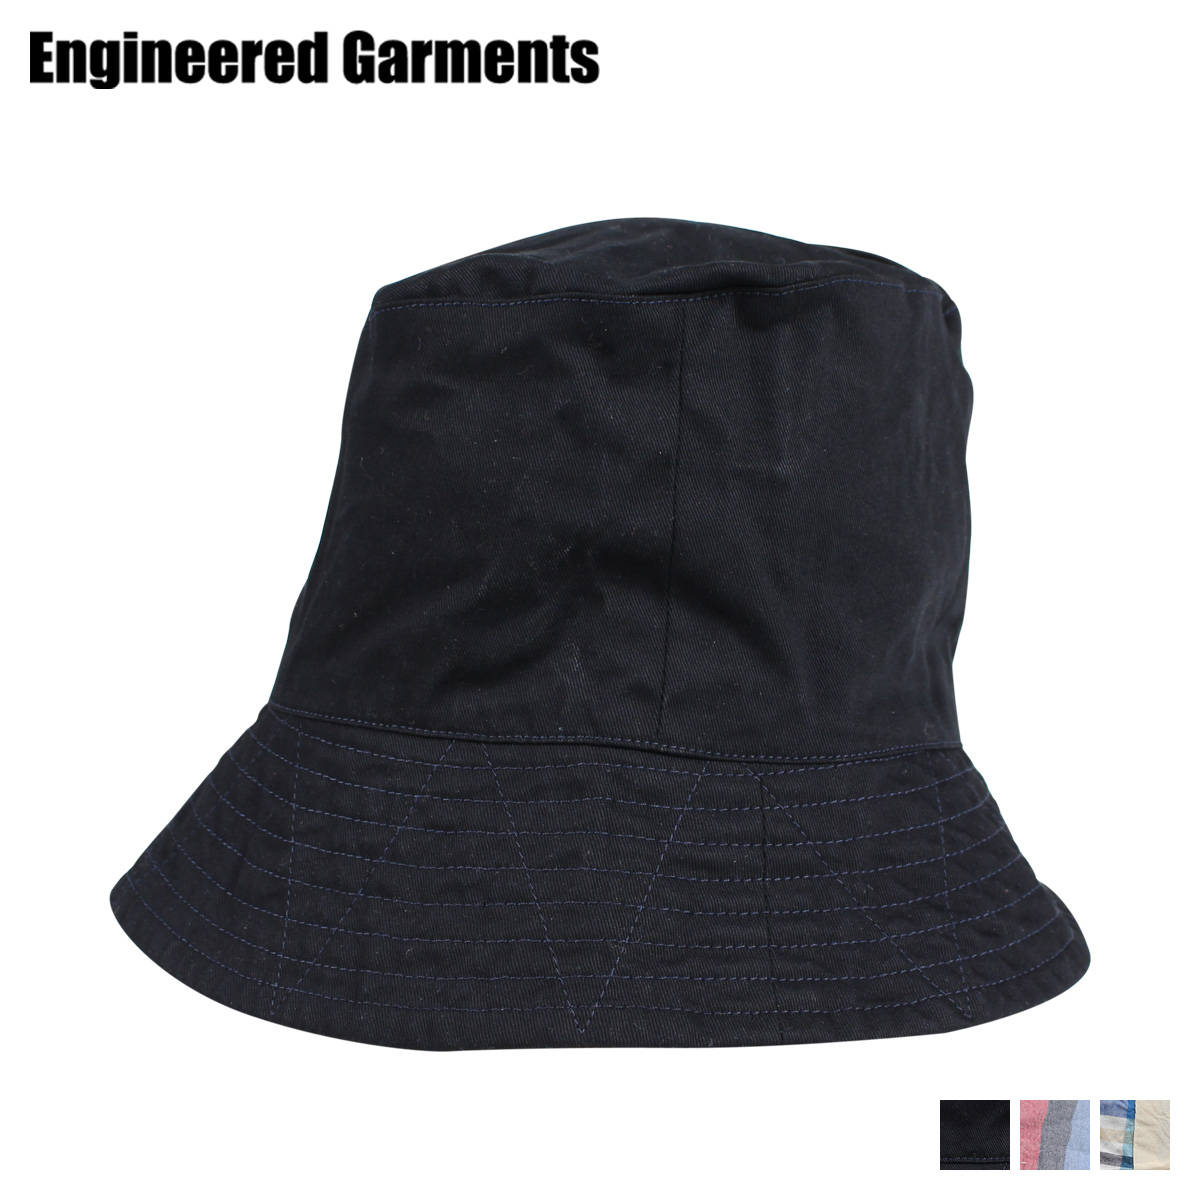 engineered garments hat engineered garments online